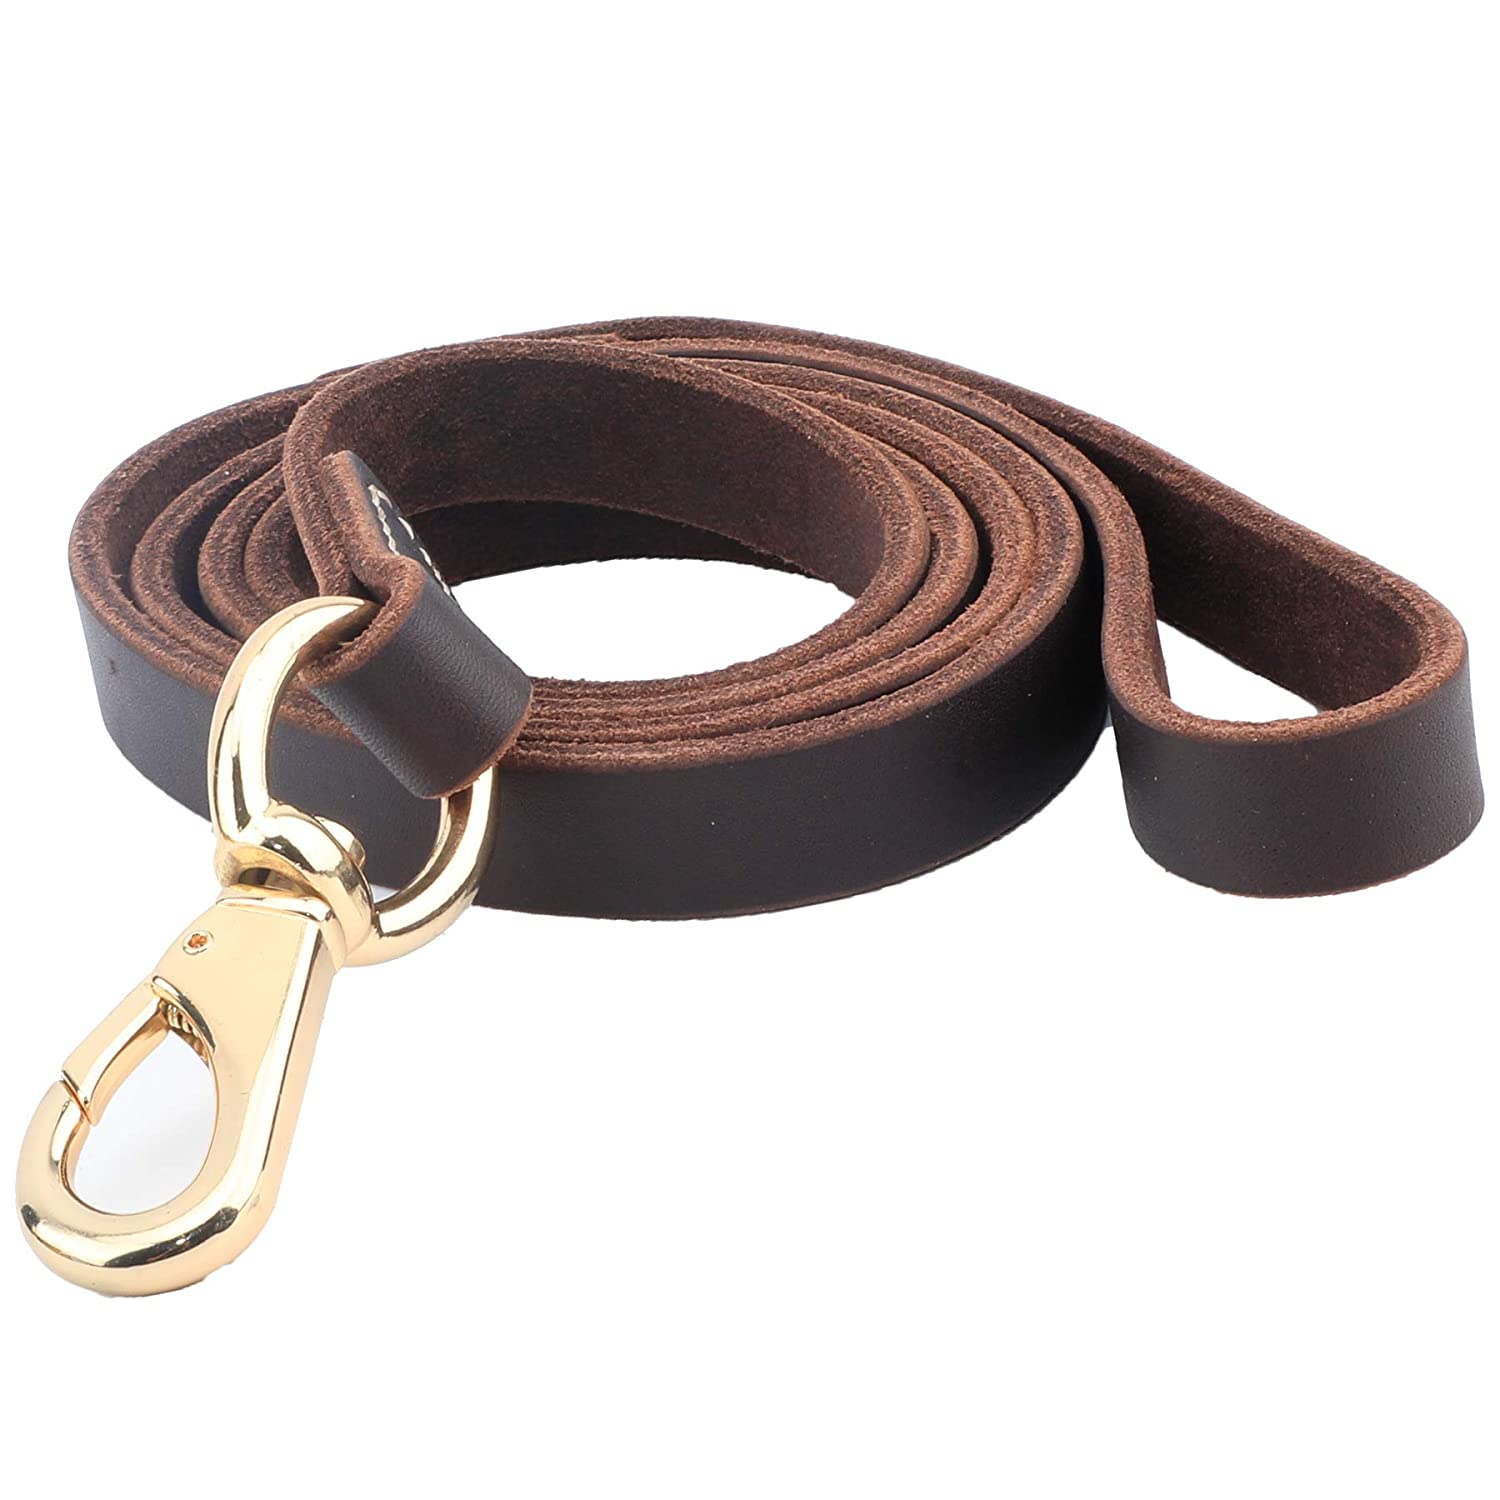 Brown 3 4''x5ft Brown 3 4''x5ft 48 Hour Sale  Leather Dog Leashes Brown 5 ft x 3 4 Inch Best Dog Leash Walking Training is Best for Medium and Large Dogs